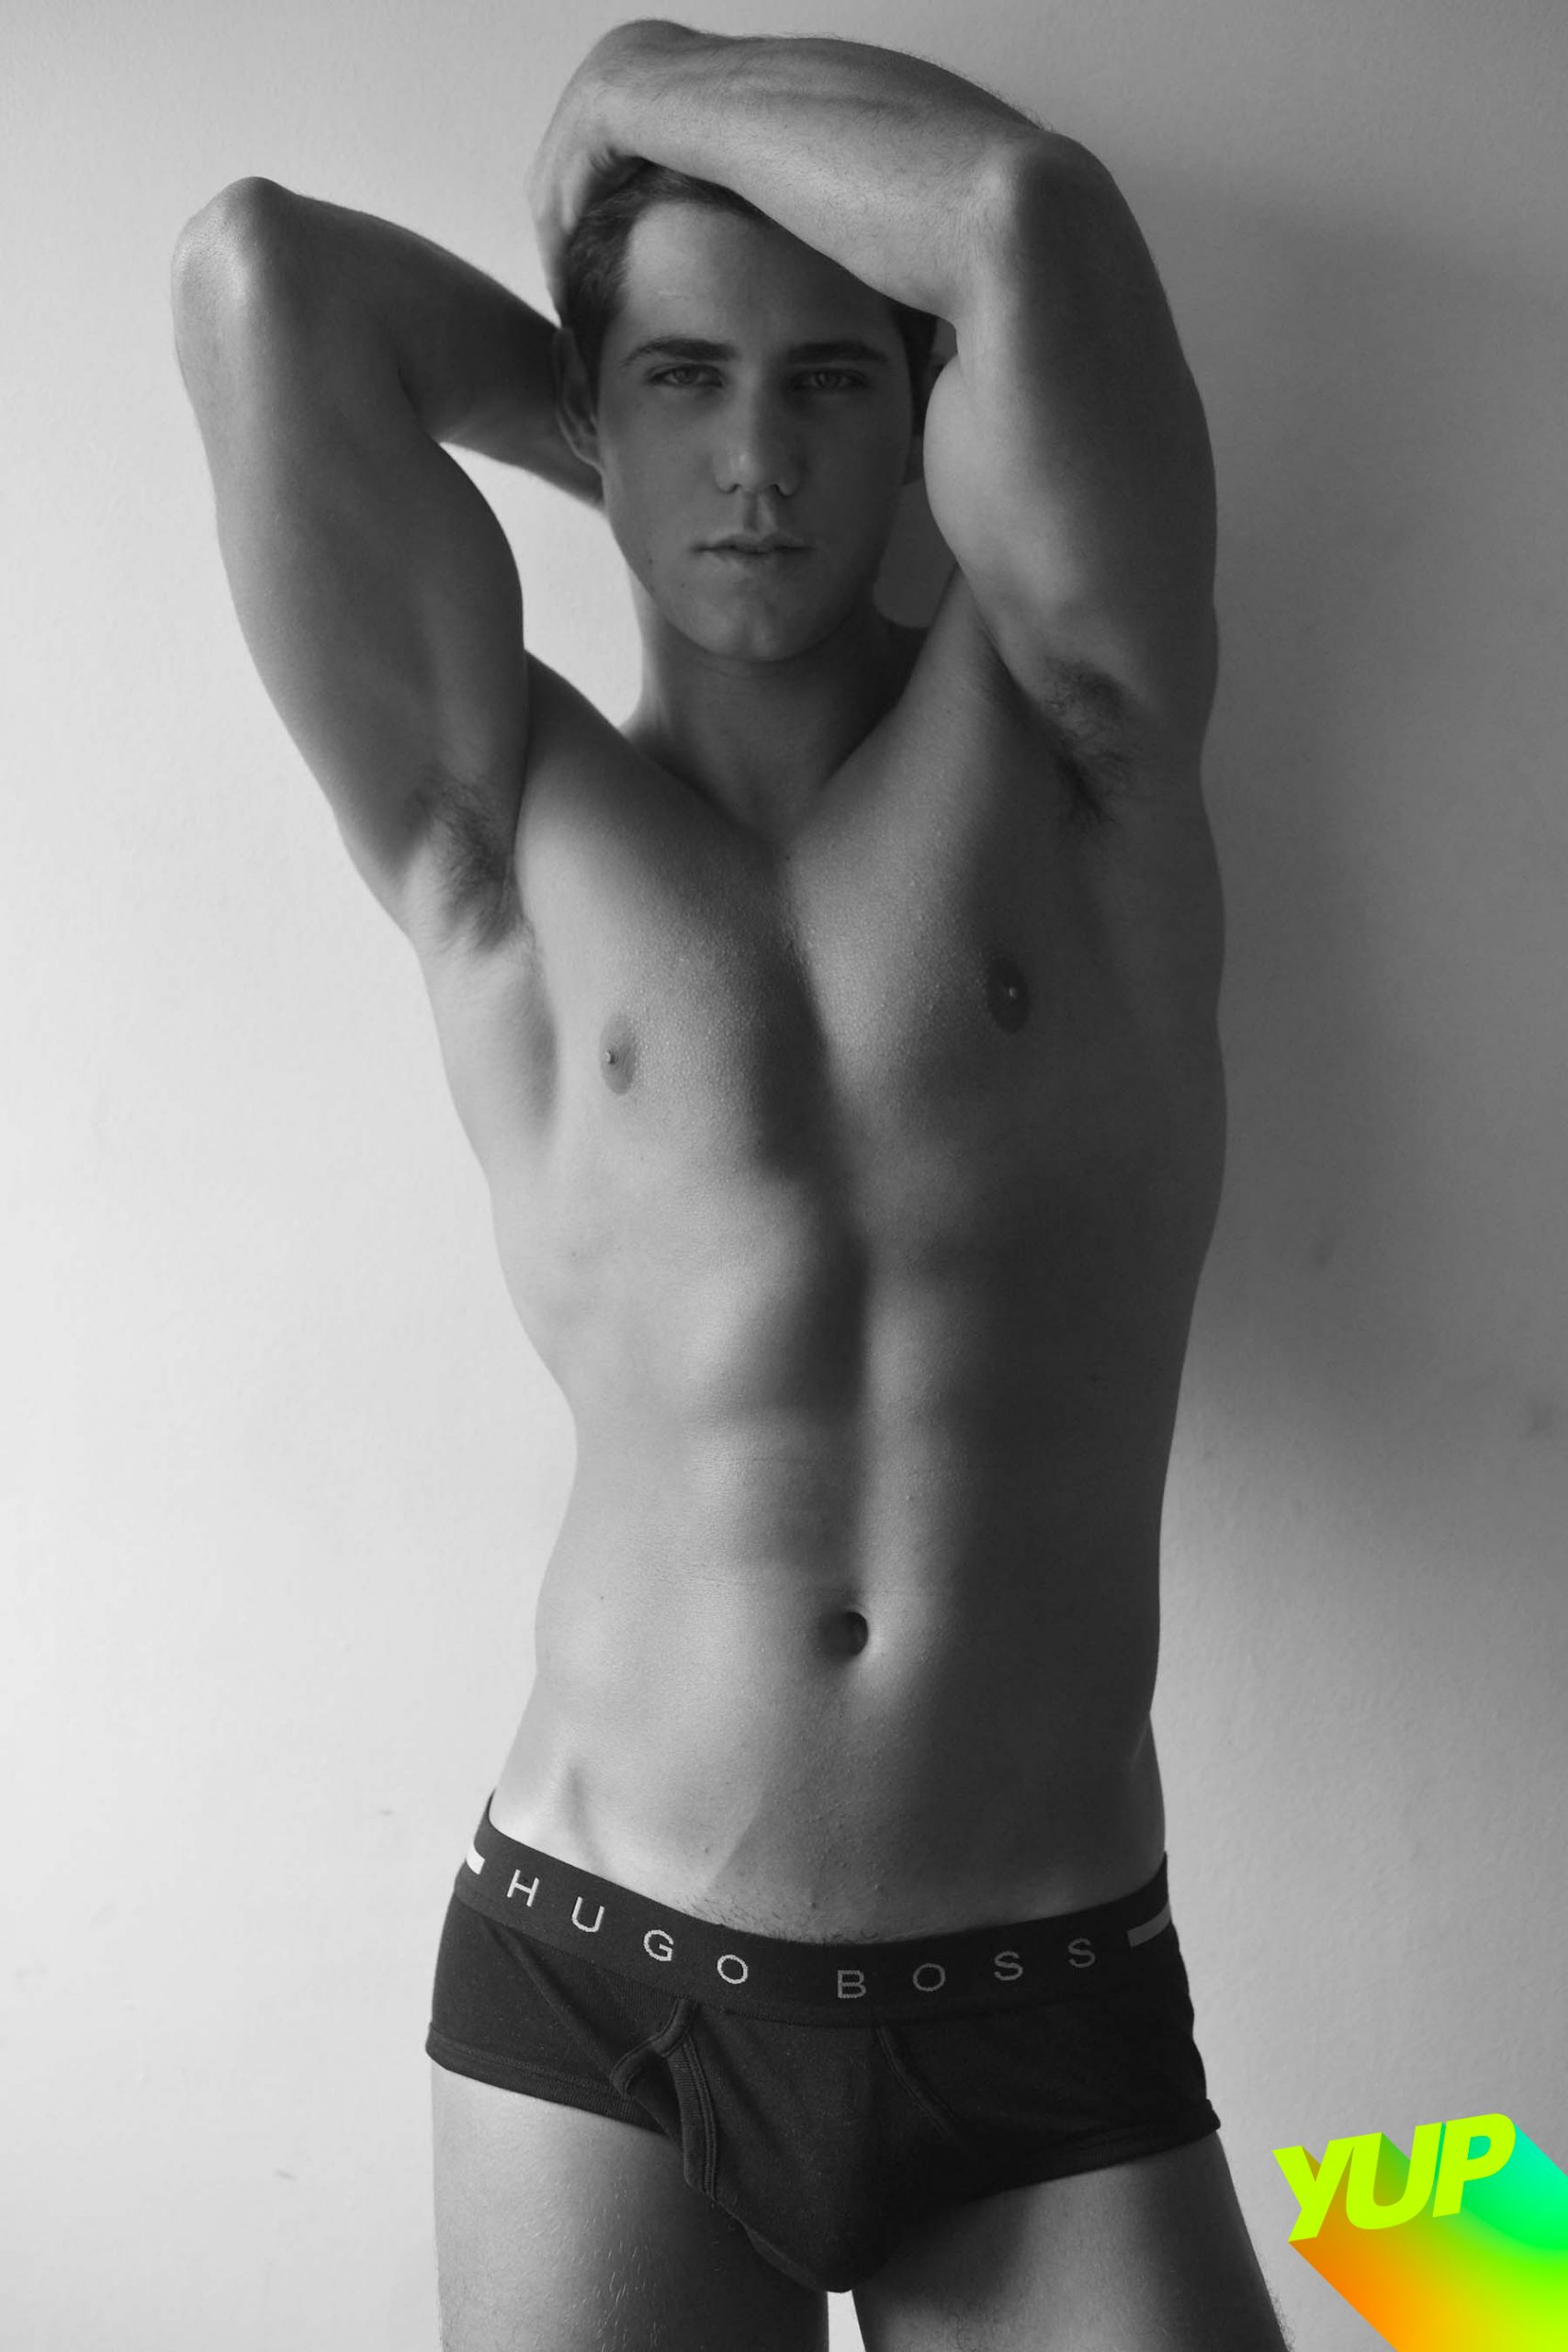 The brazilian model Guilherme Scopel appeared with his beauty and a little more without the practice of the photographic essay of Rodrigo Marconatto, published with exclusivity on the yup-mag.com